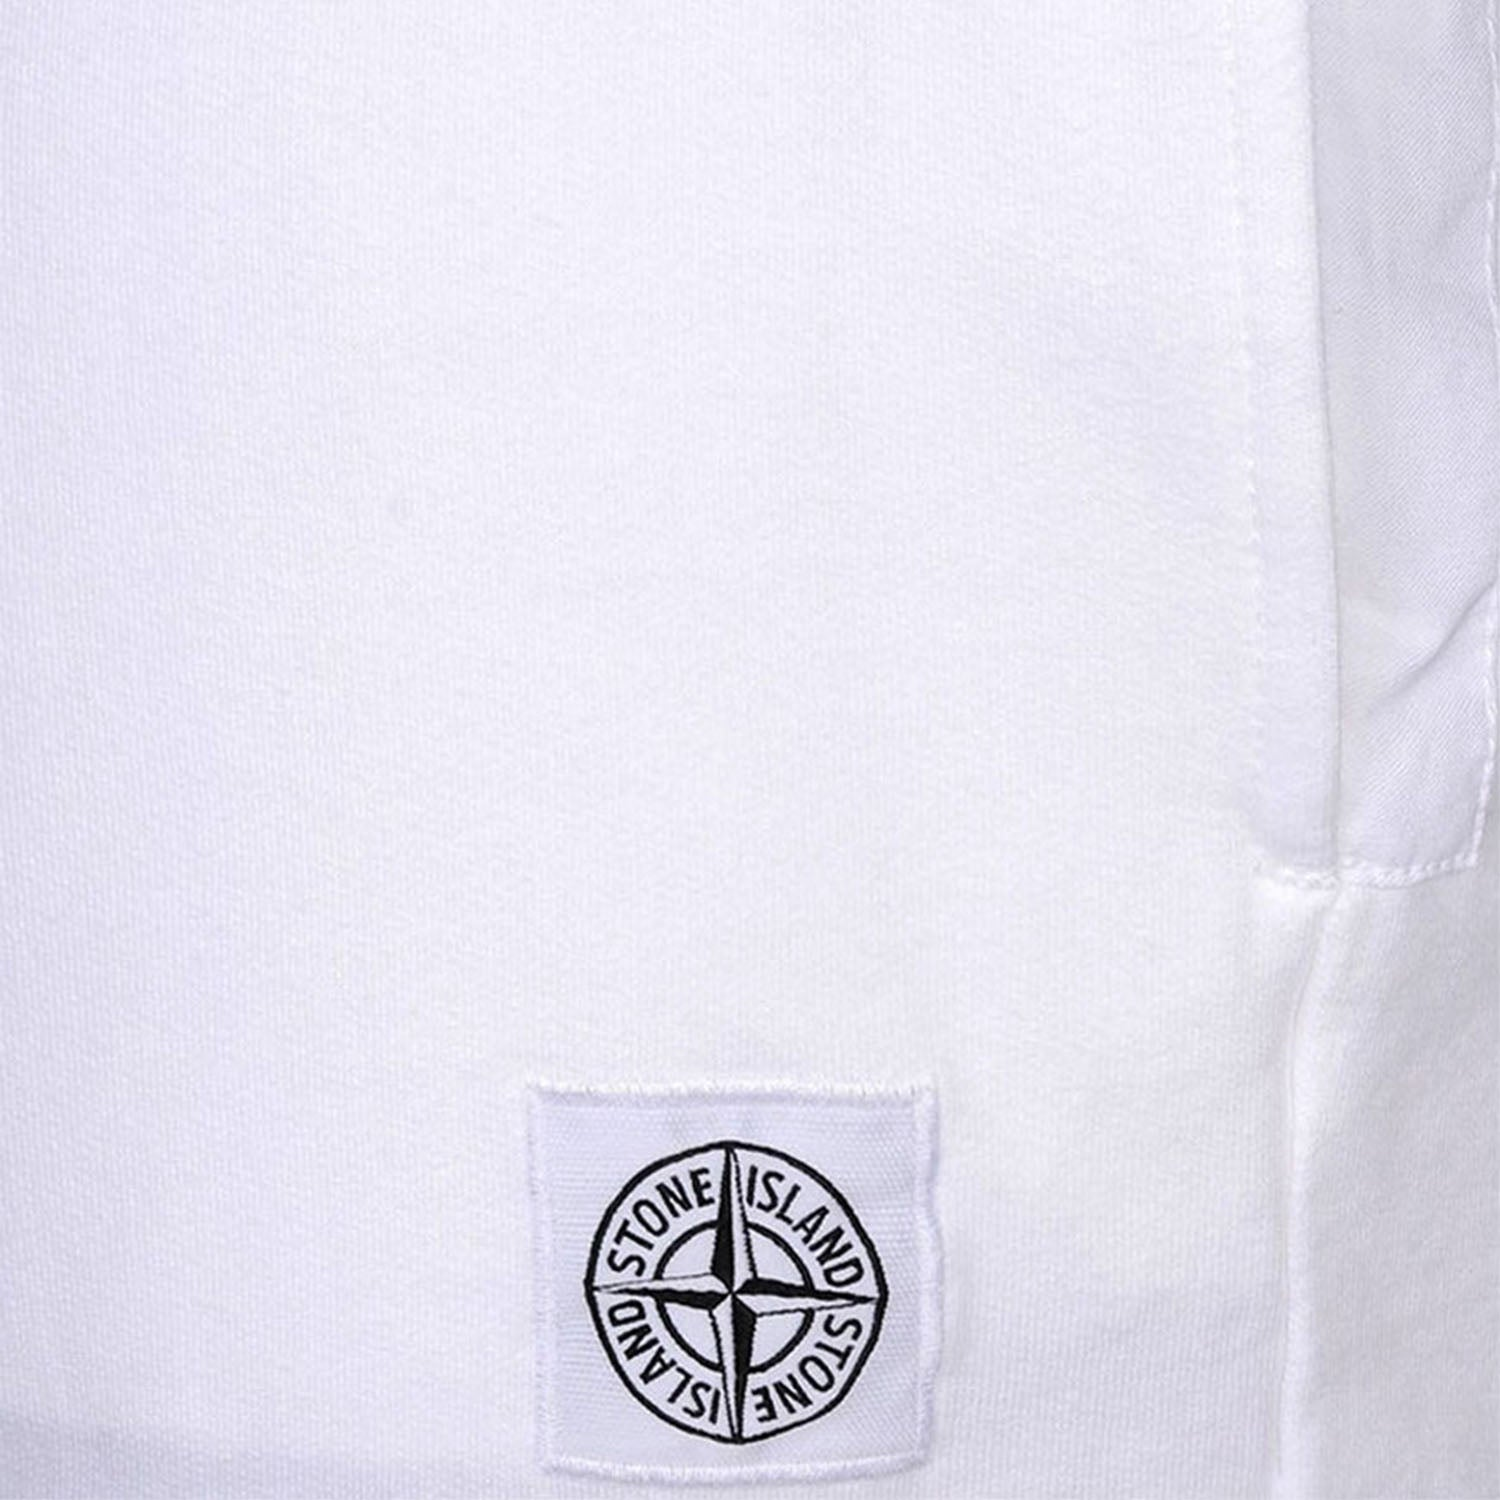 Stone Island Embroidered Logo Patch Sweatpants White